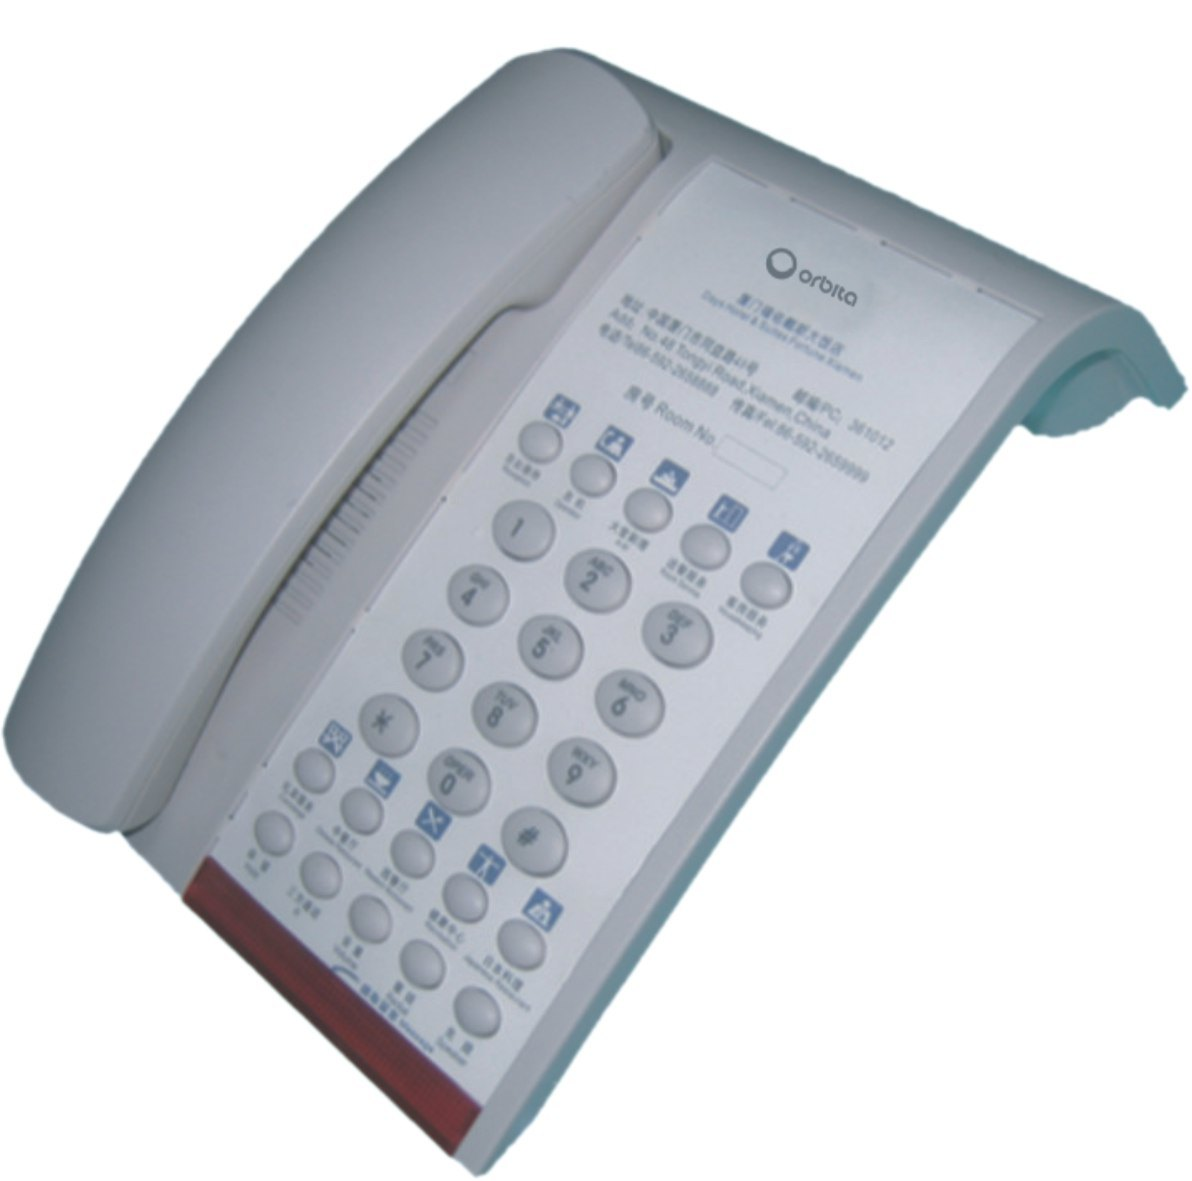 Orbita Nice Design Hotel Cord Telephone for Hotel Guest Room